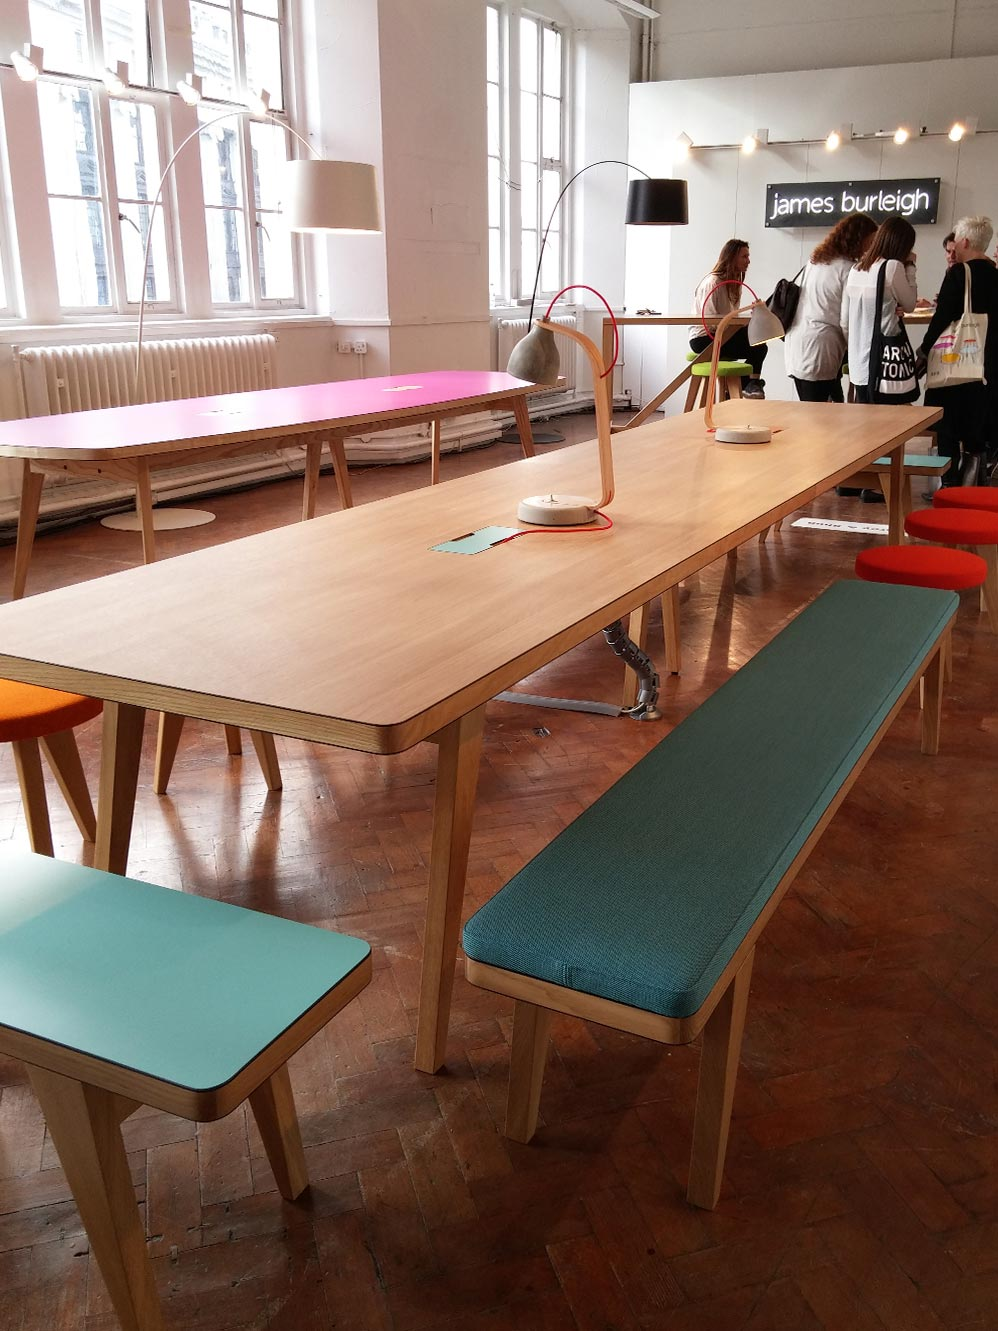 We loved this contemporary set of furniture by  James Burleigh . Really breaks the boundaries between formal and informal furniture.